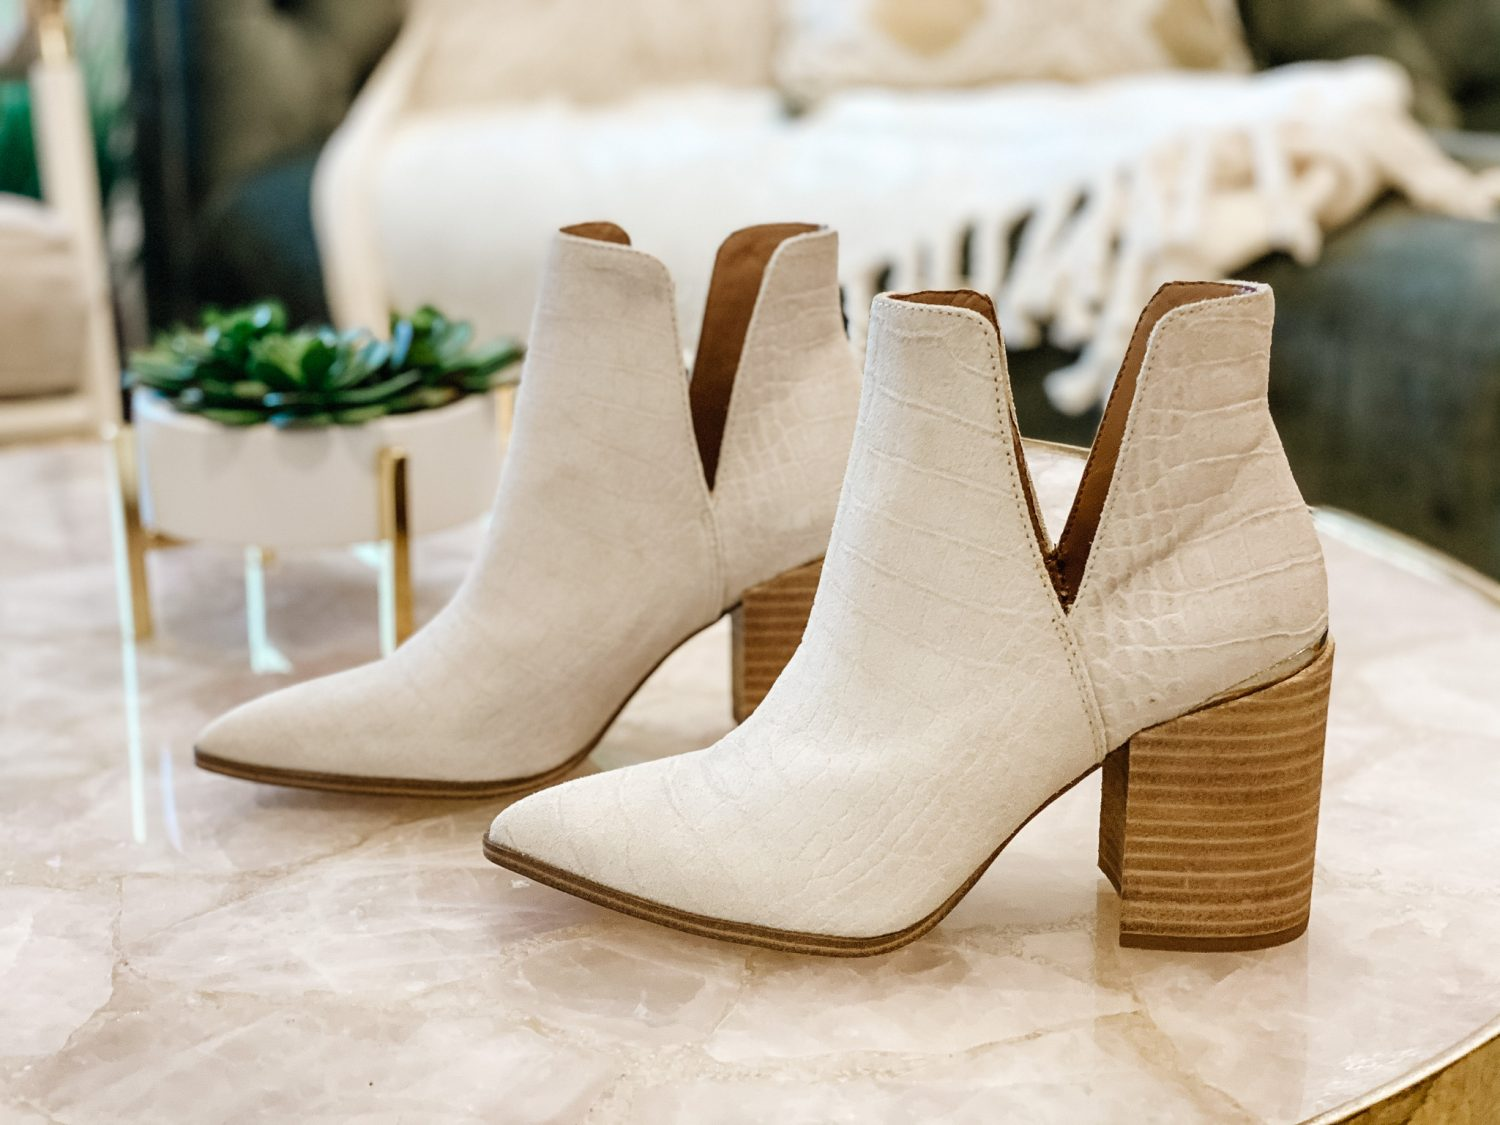 the motherchic wearing steve madden notched bootie shoe nordstrom anniversary sale